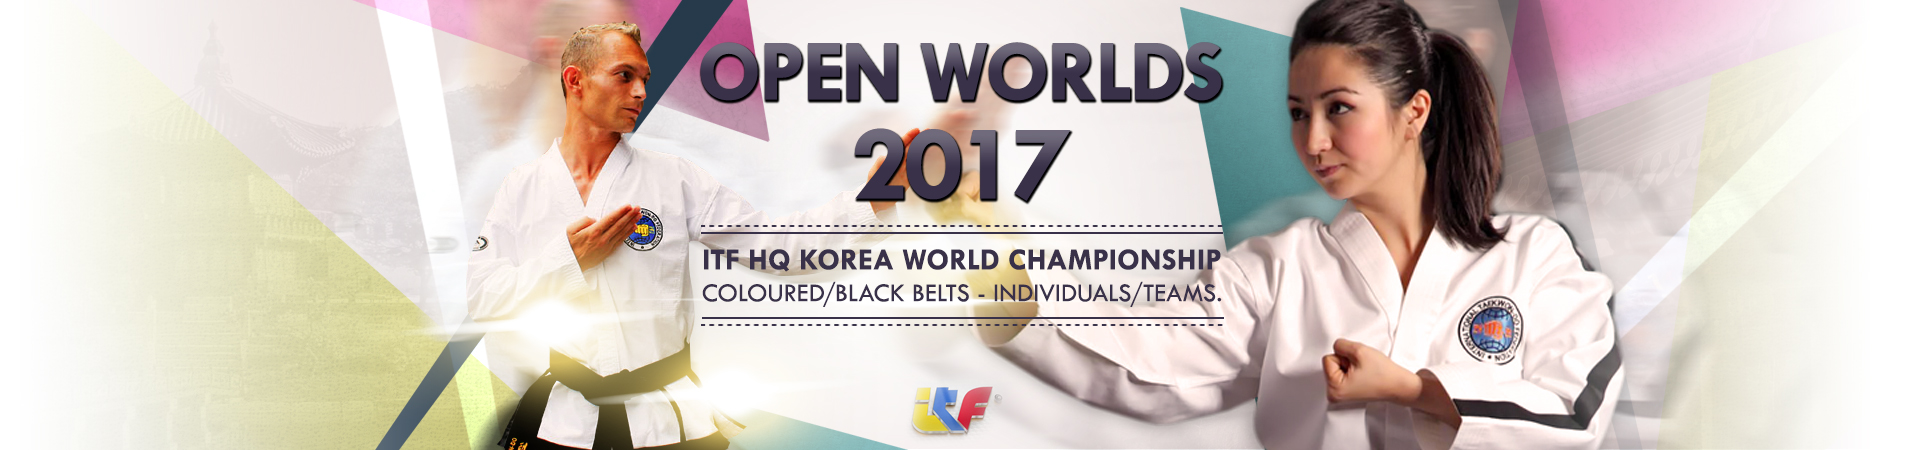 Open World Taekwon-Do Championships 2017